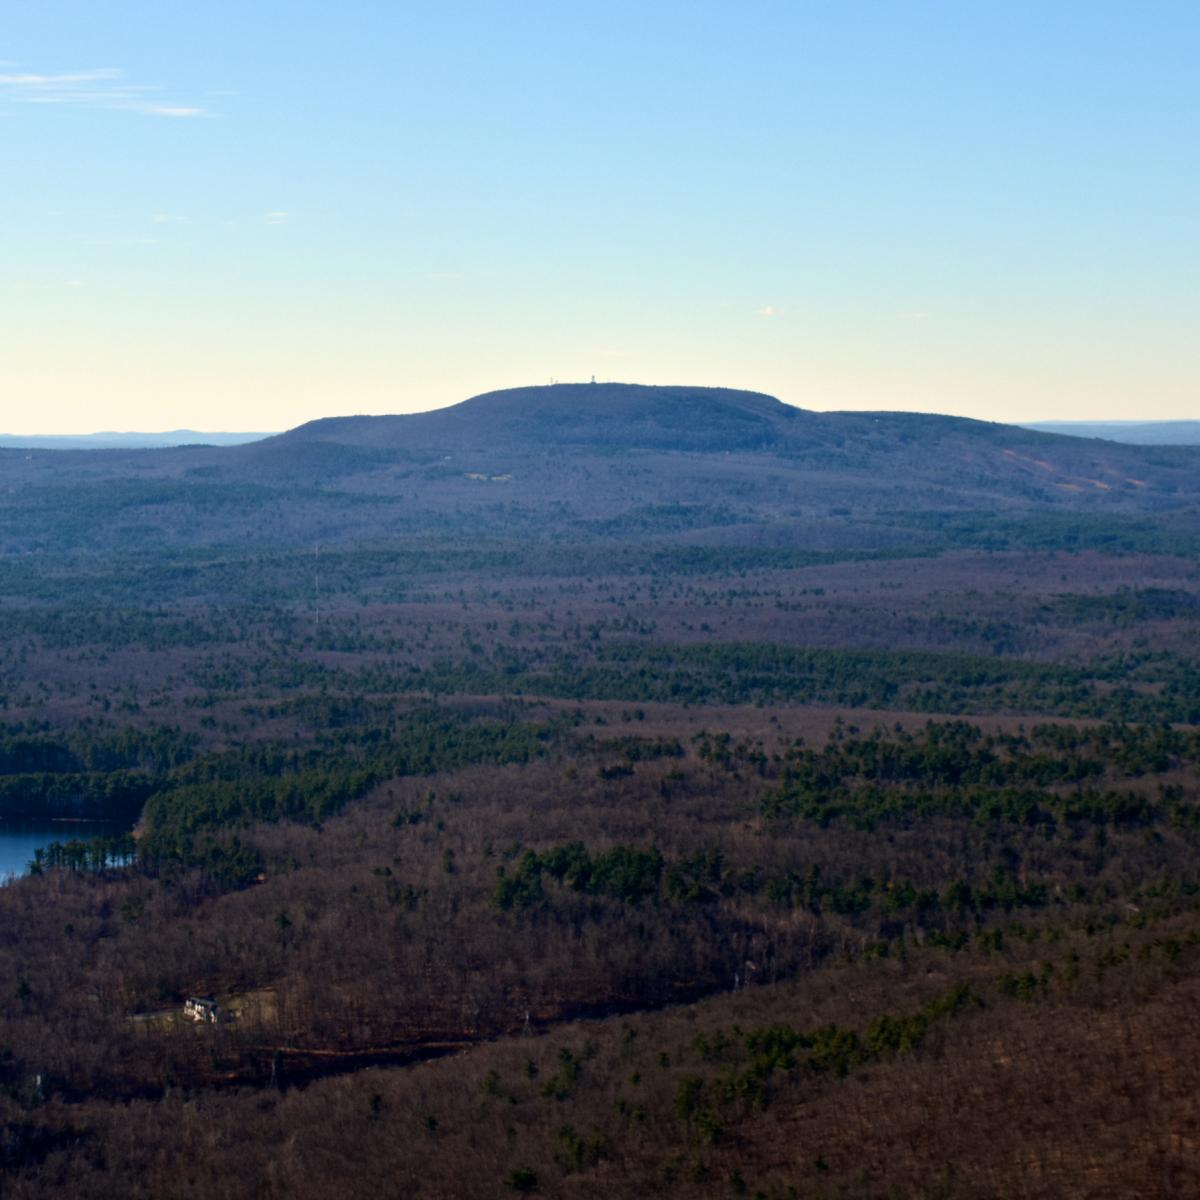 Mount Monadnock in Massachusetts.